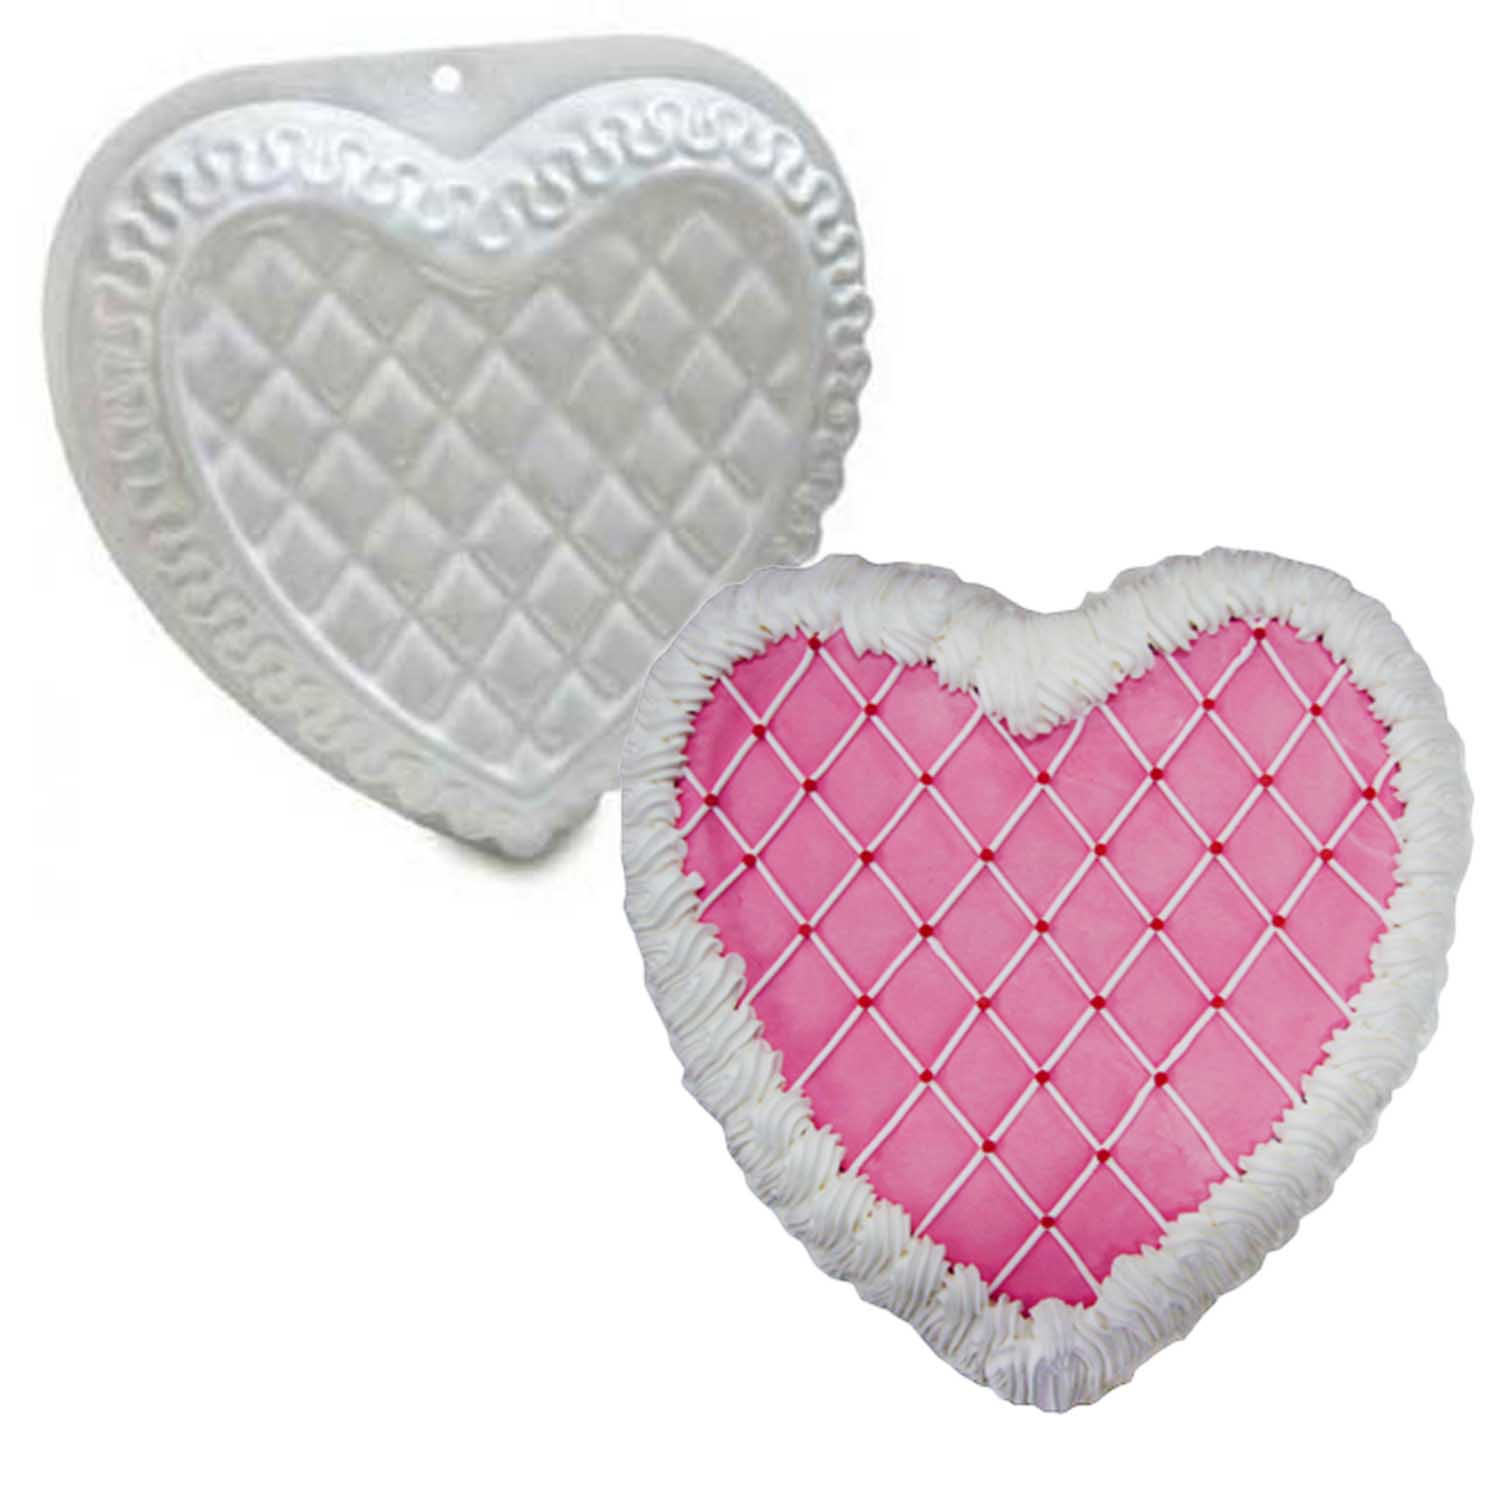 Fancy Heart Pantastic Plastic Cake Pan